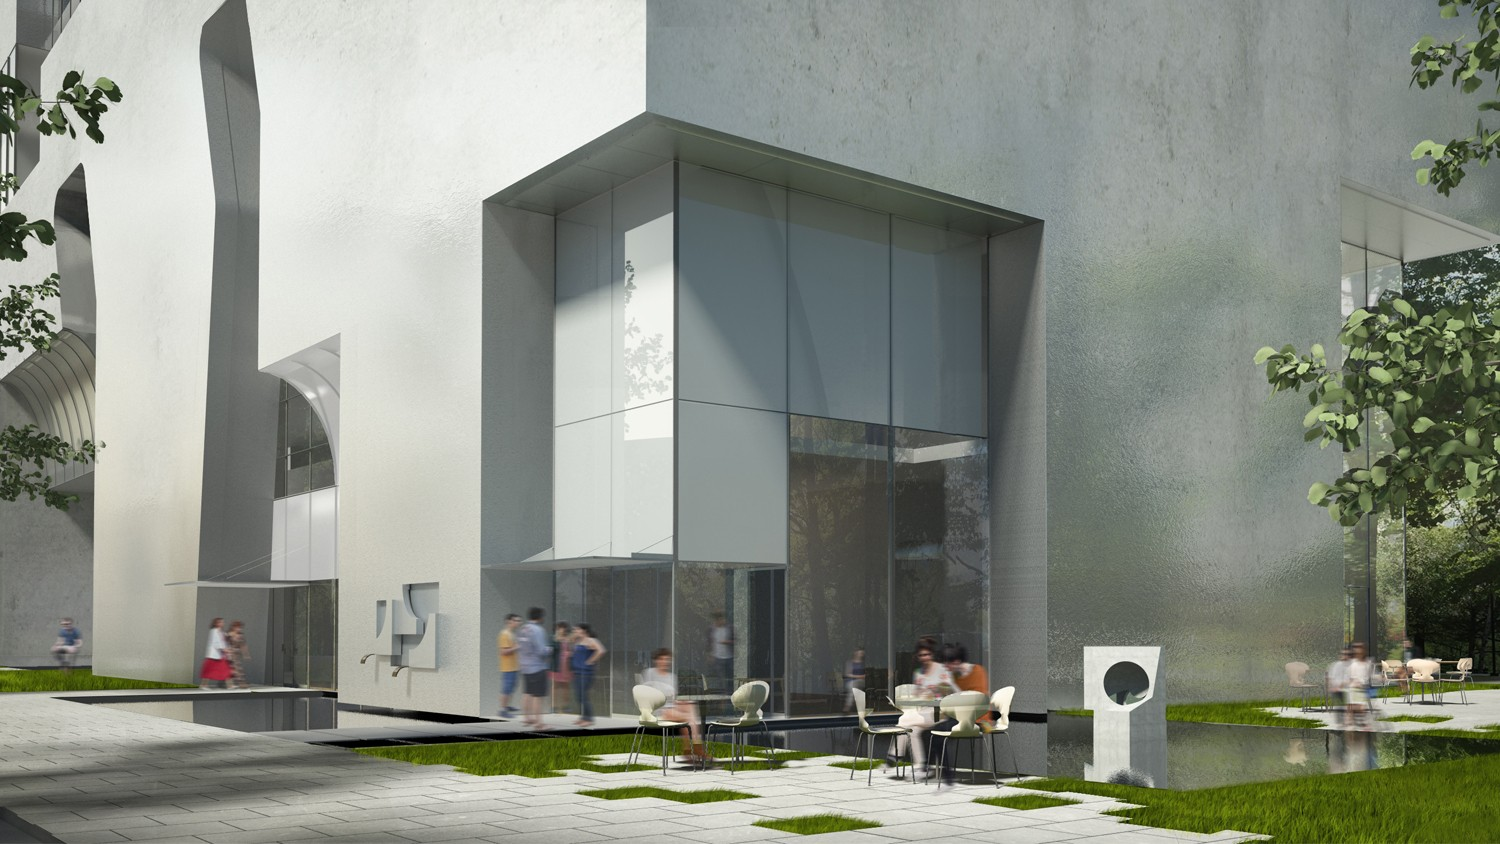 https://stevenholl.sfo2.digitaloceanspaces.com/uploads/projects/project-images/cifi-garden.jpg